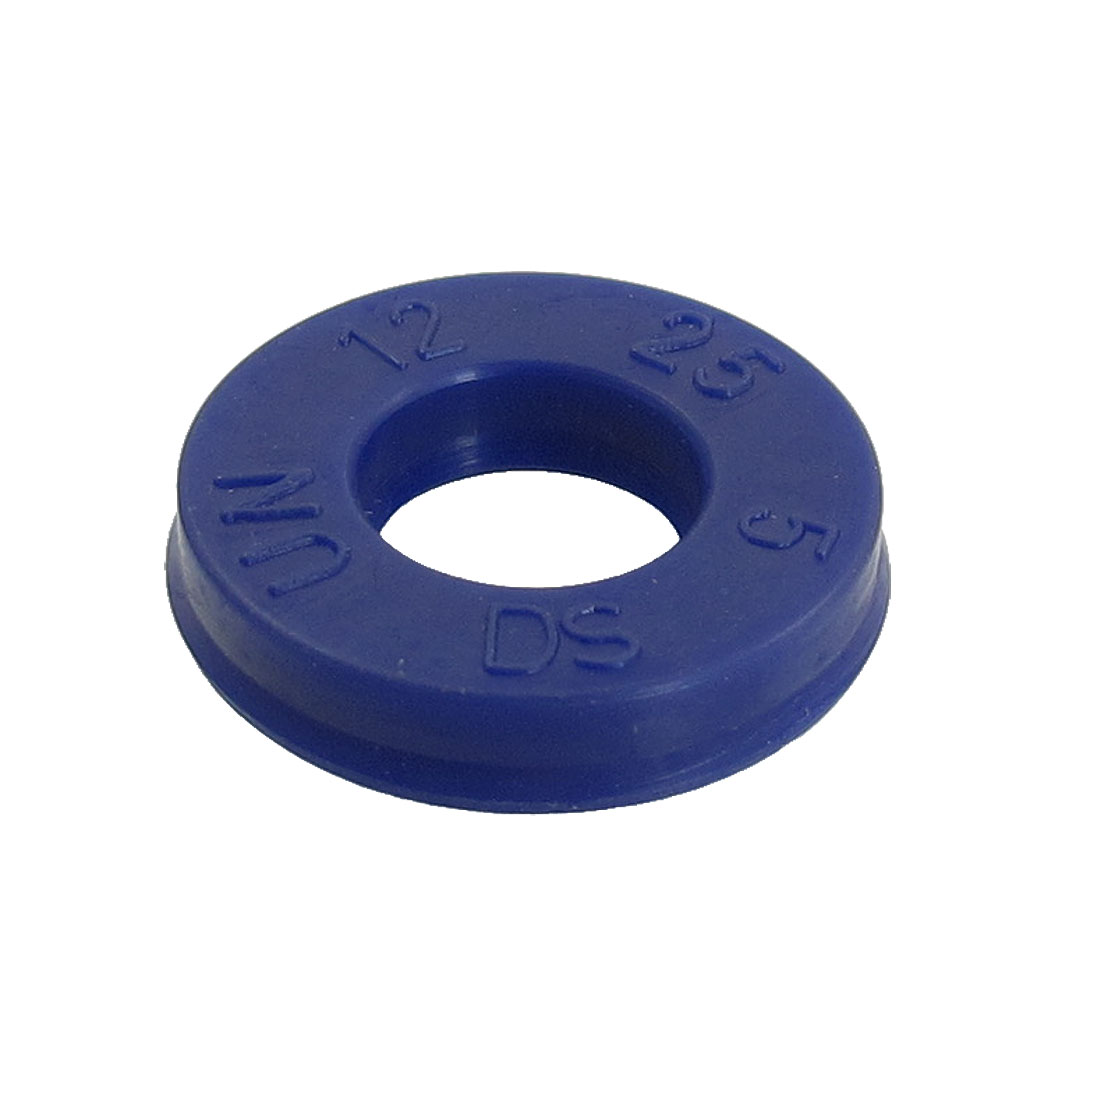 Blue PU 12x25x5mm Double Lip Sealing Cushion Dust Seal Ring